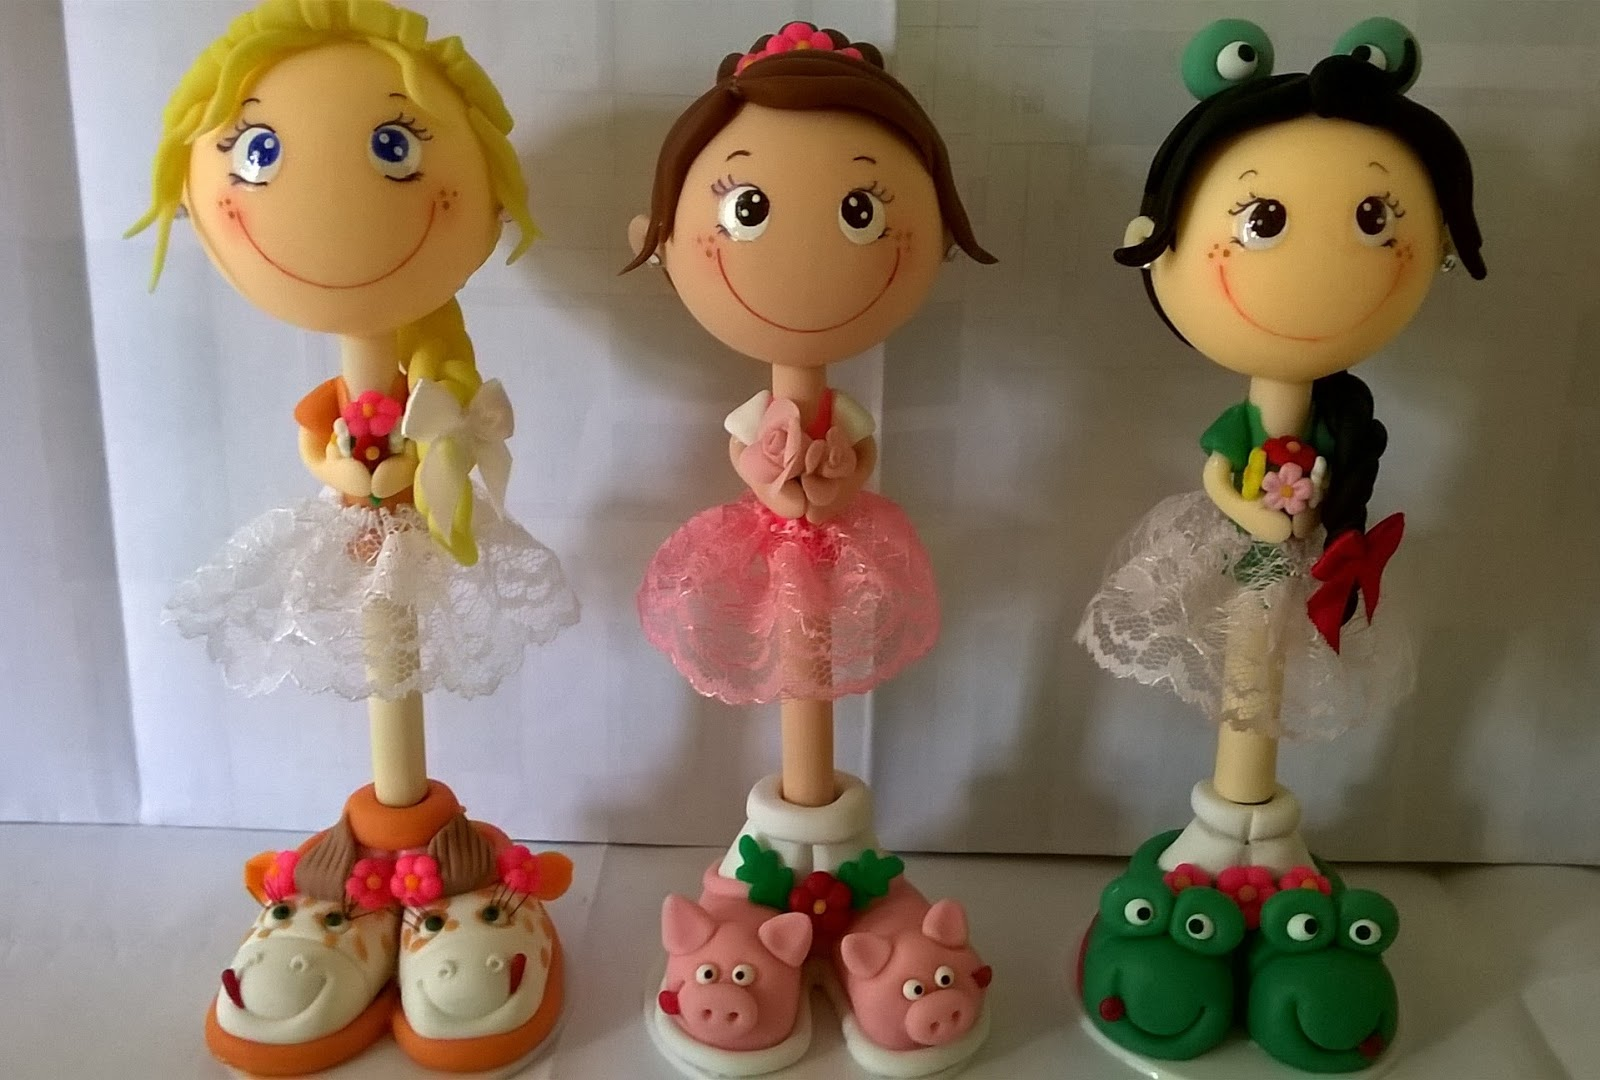 Excepcional CANETAS DECORADAS COM BISCUIT PERSONAGENS | ANDREZA GOUVEIA IP41